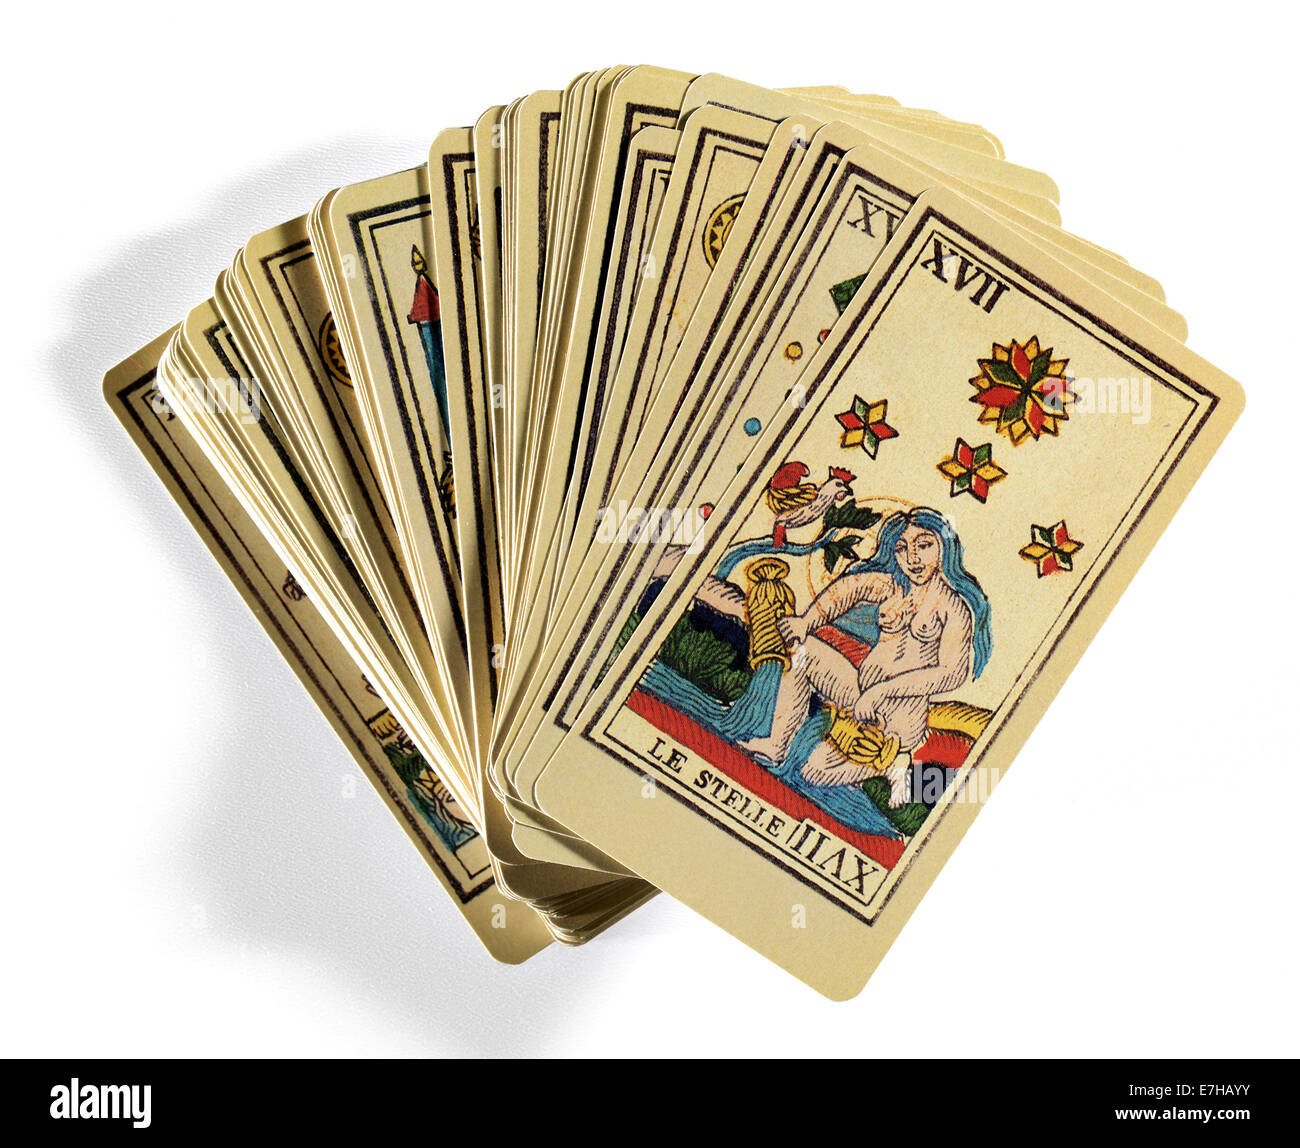 Tarot Cards on White Background - Stock Image